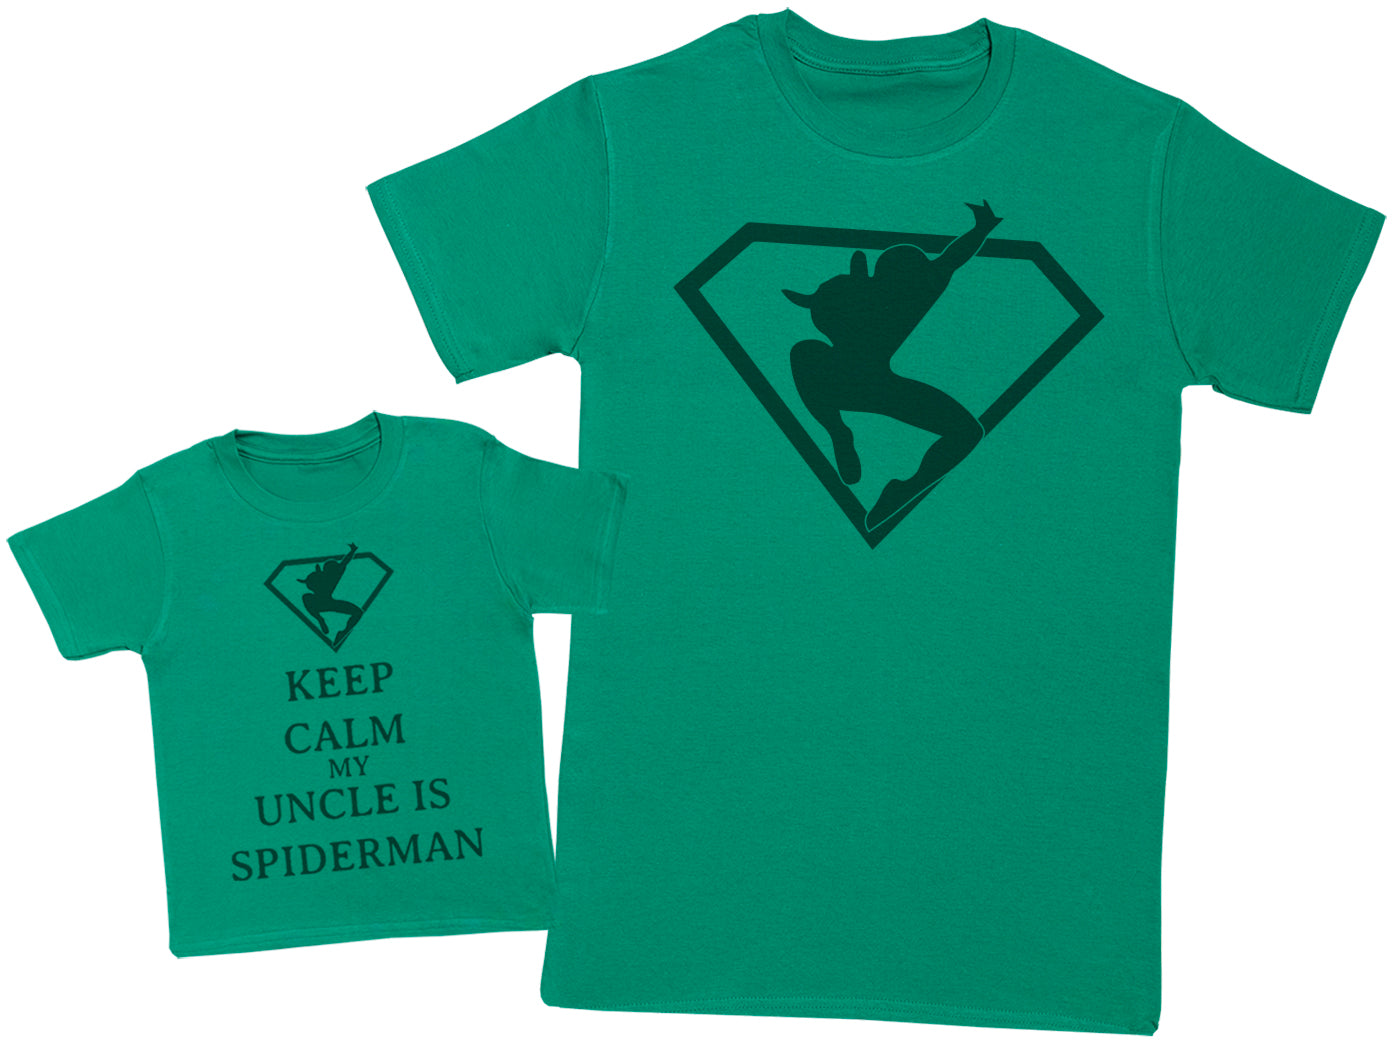 Keep Calm My Uncle Is Spiderman Matching Uncle Baby Gift Set - Mens T Shirt & Baby T - Shirt